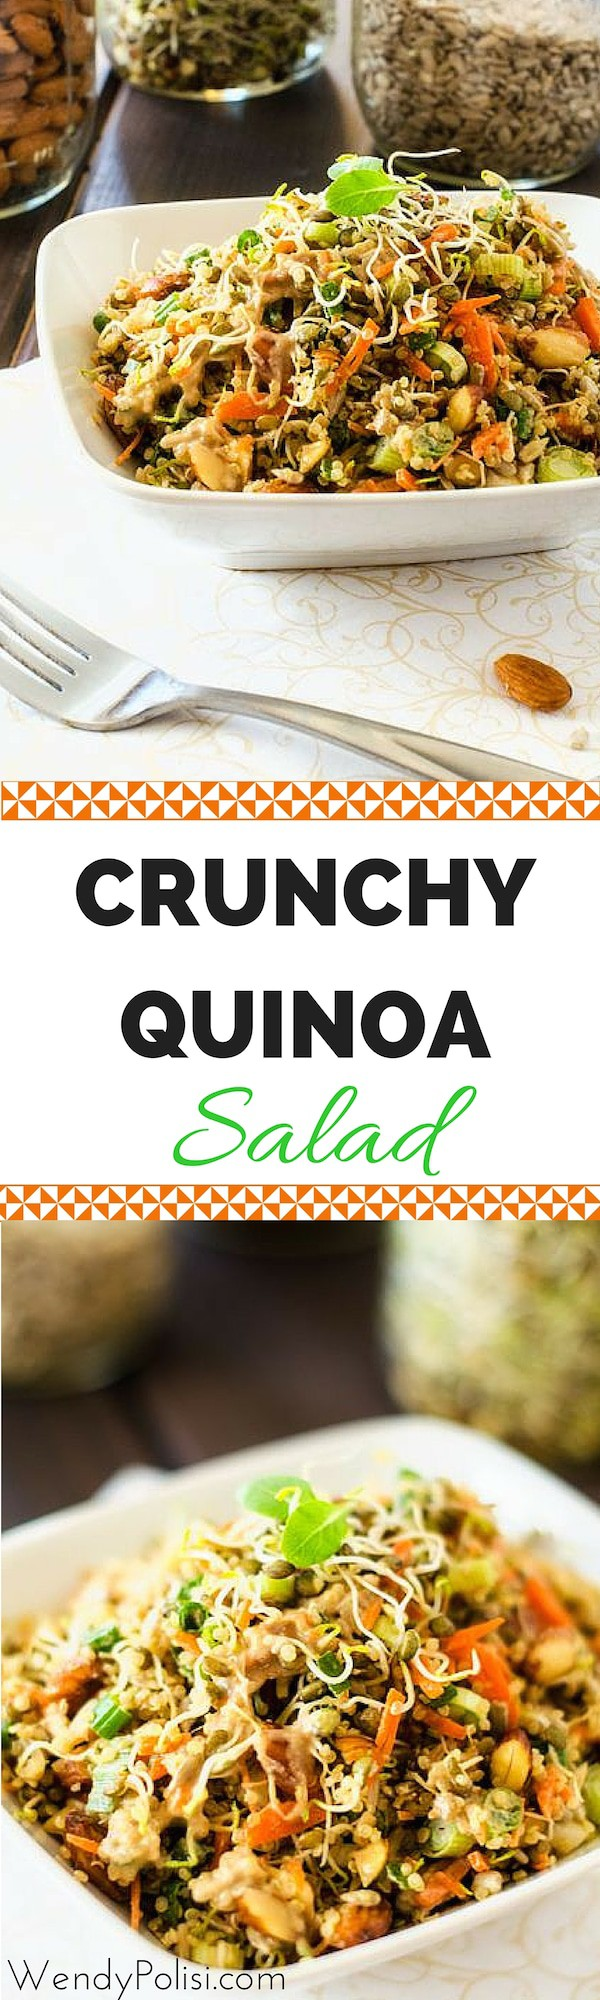 Crunchy Quinoa Salad - This vegan quinoa salad is all about the texture. Delicious and Nutritious! - WendyPolisi.com